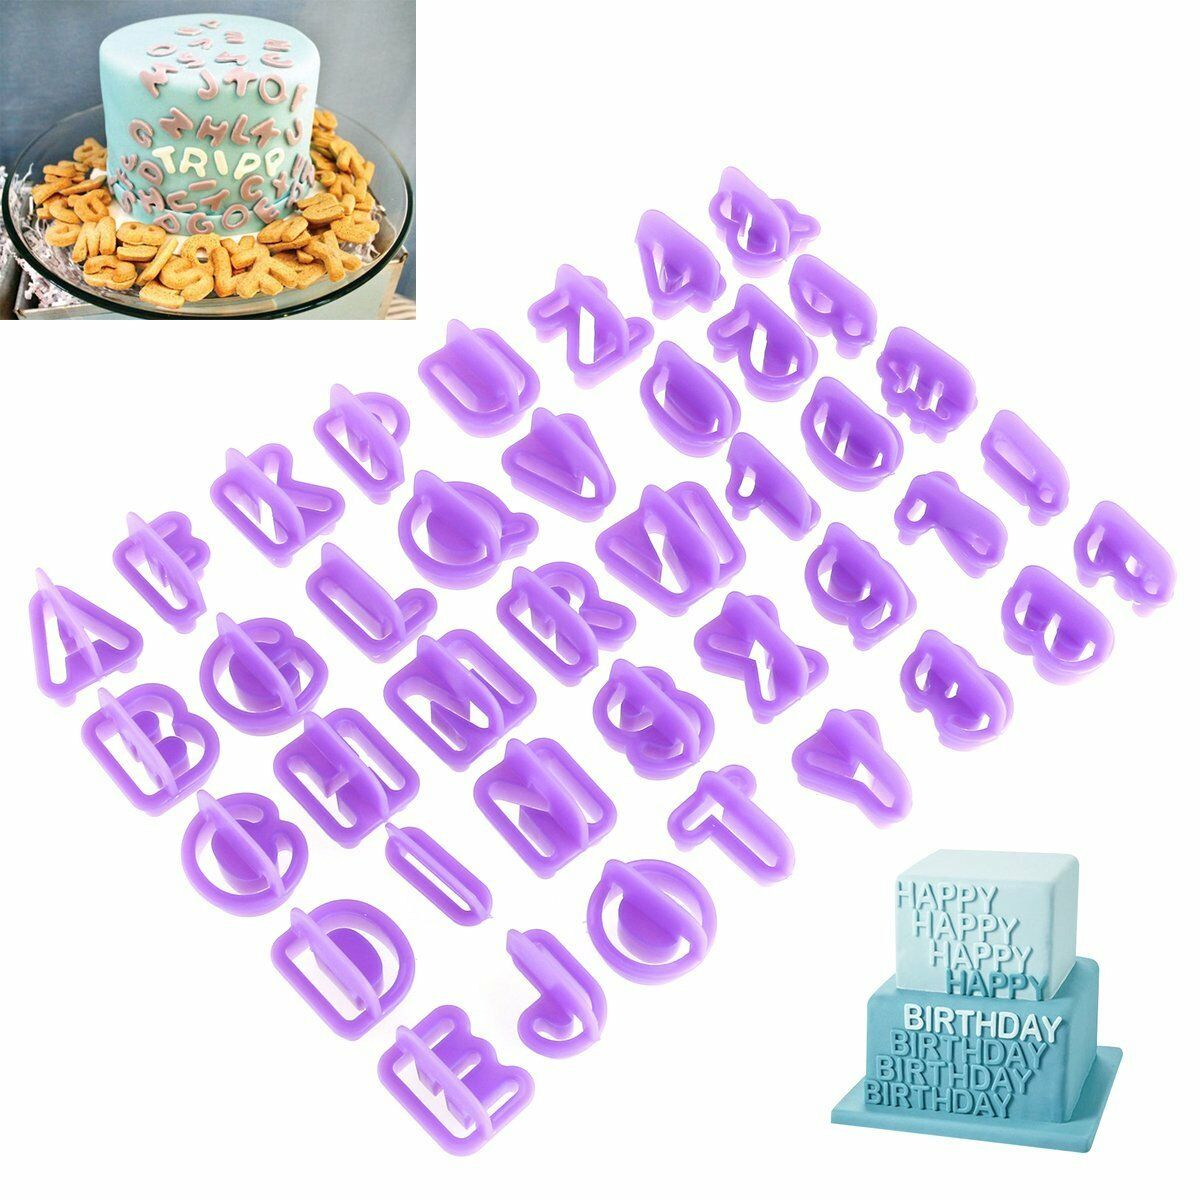 40pcs/Set Icing Cutter Mold Mould Alphabet Number Letter Fondant Cake Decorating Baking Accs. & Cake Decorating